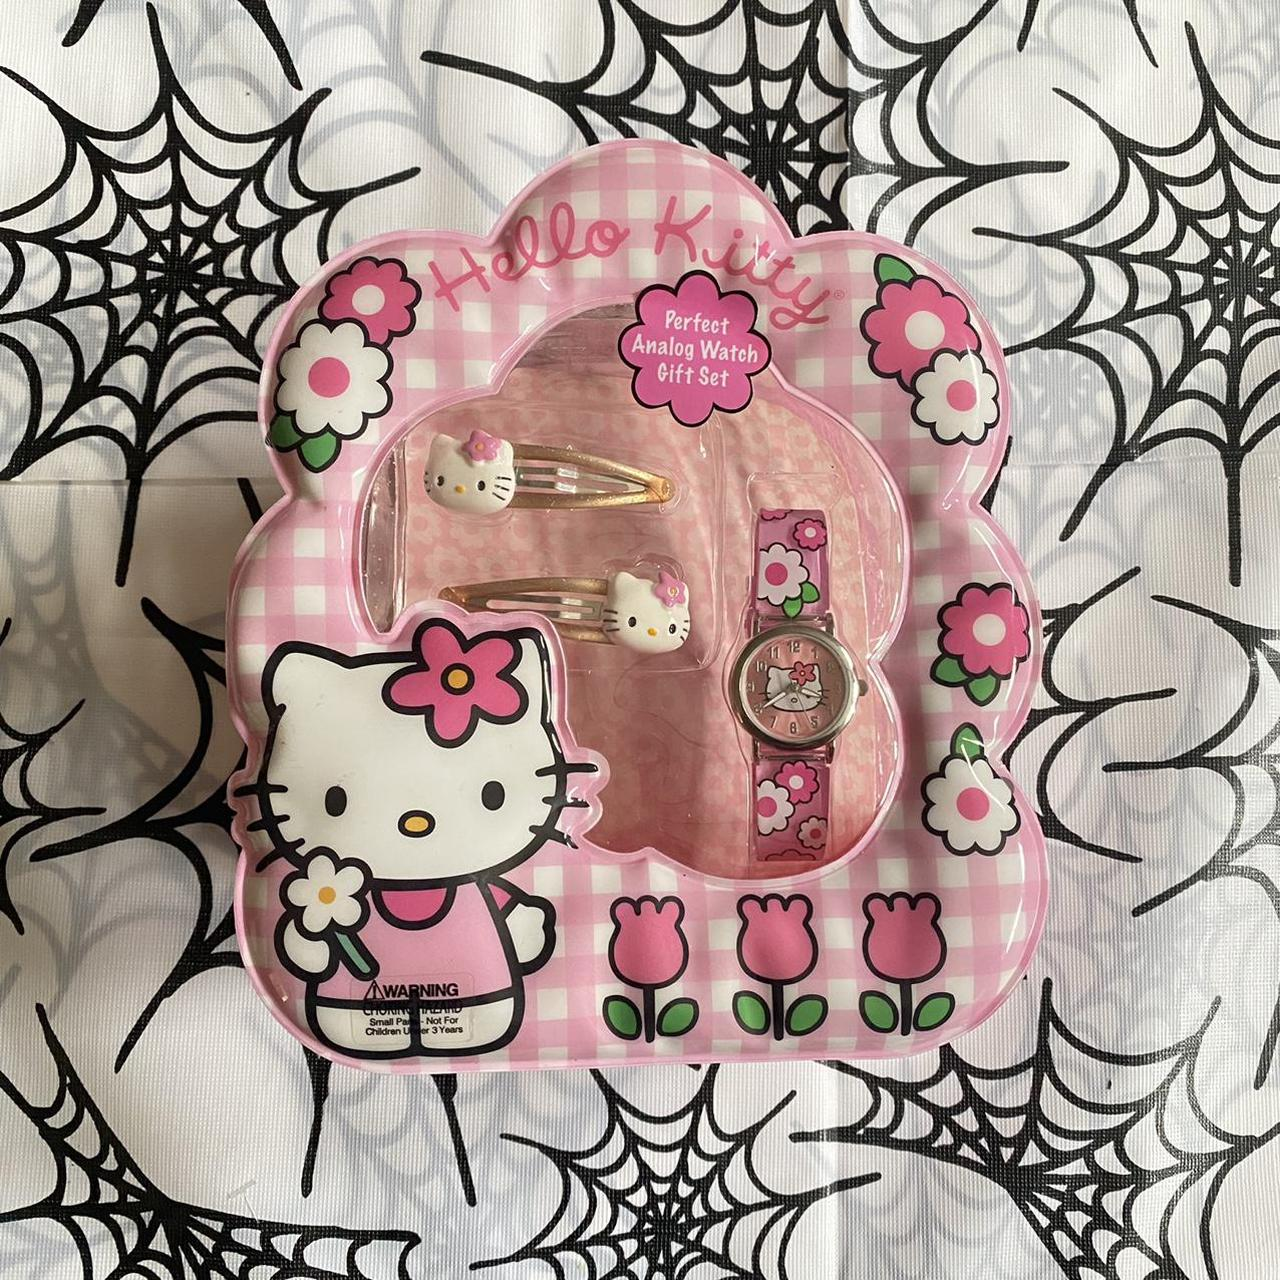 Product Image 1 - 🎀 Hello Kitty Set 🎀 Includes: Pair